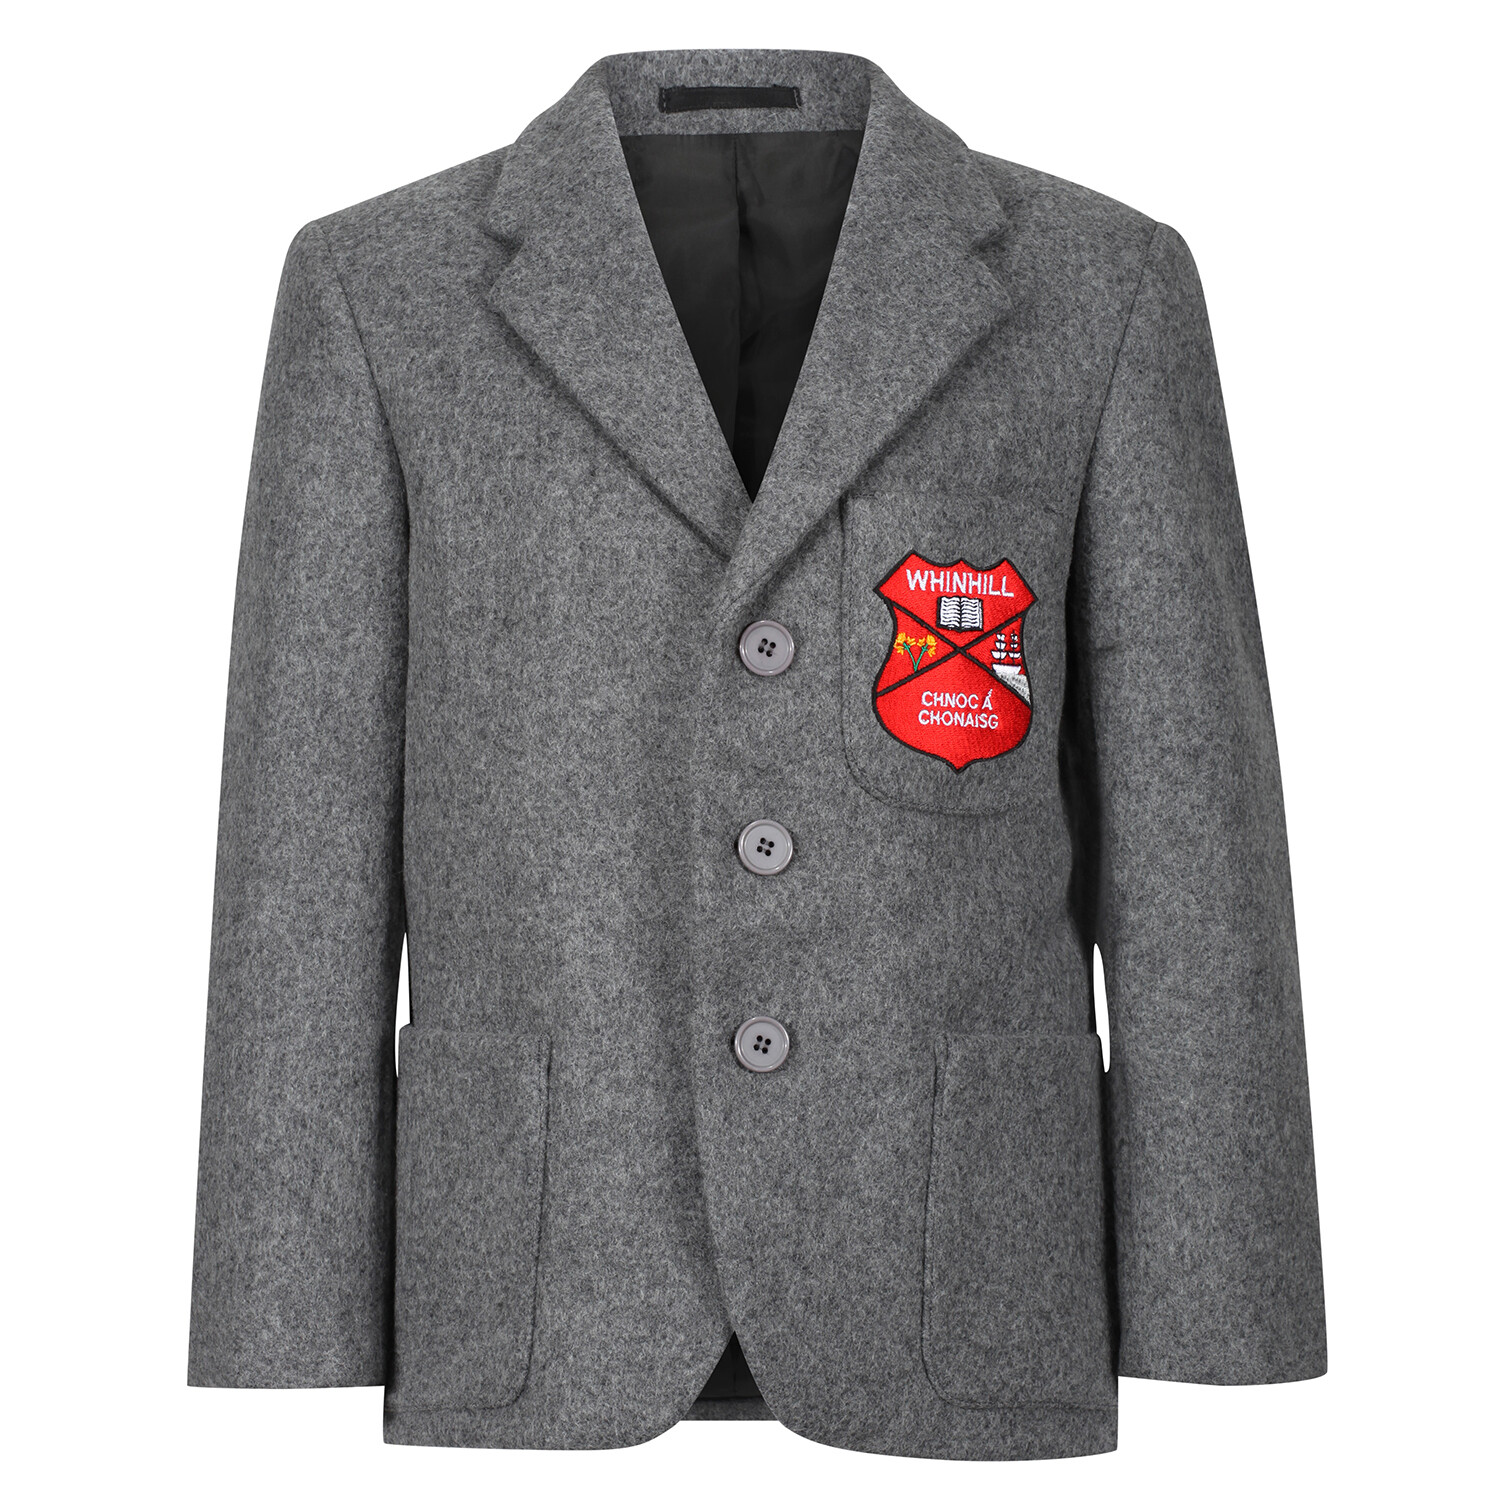 Whinhill Primary 'Wool' Blazer (Made-to-Order)